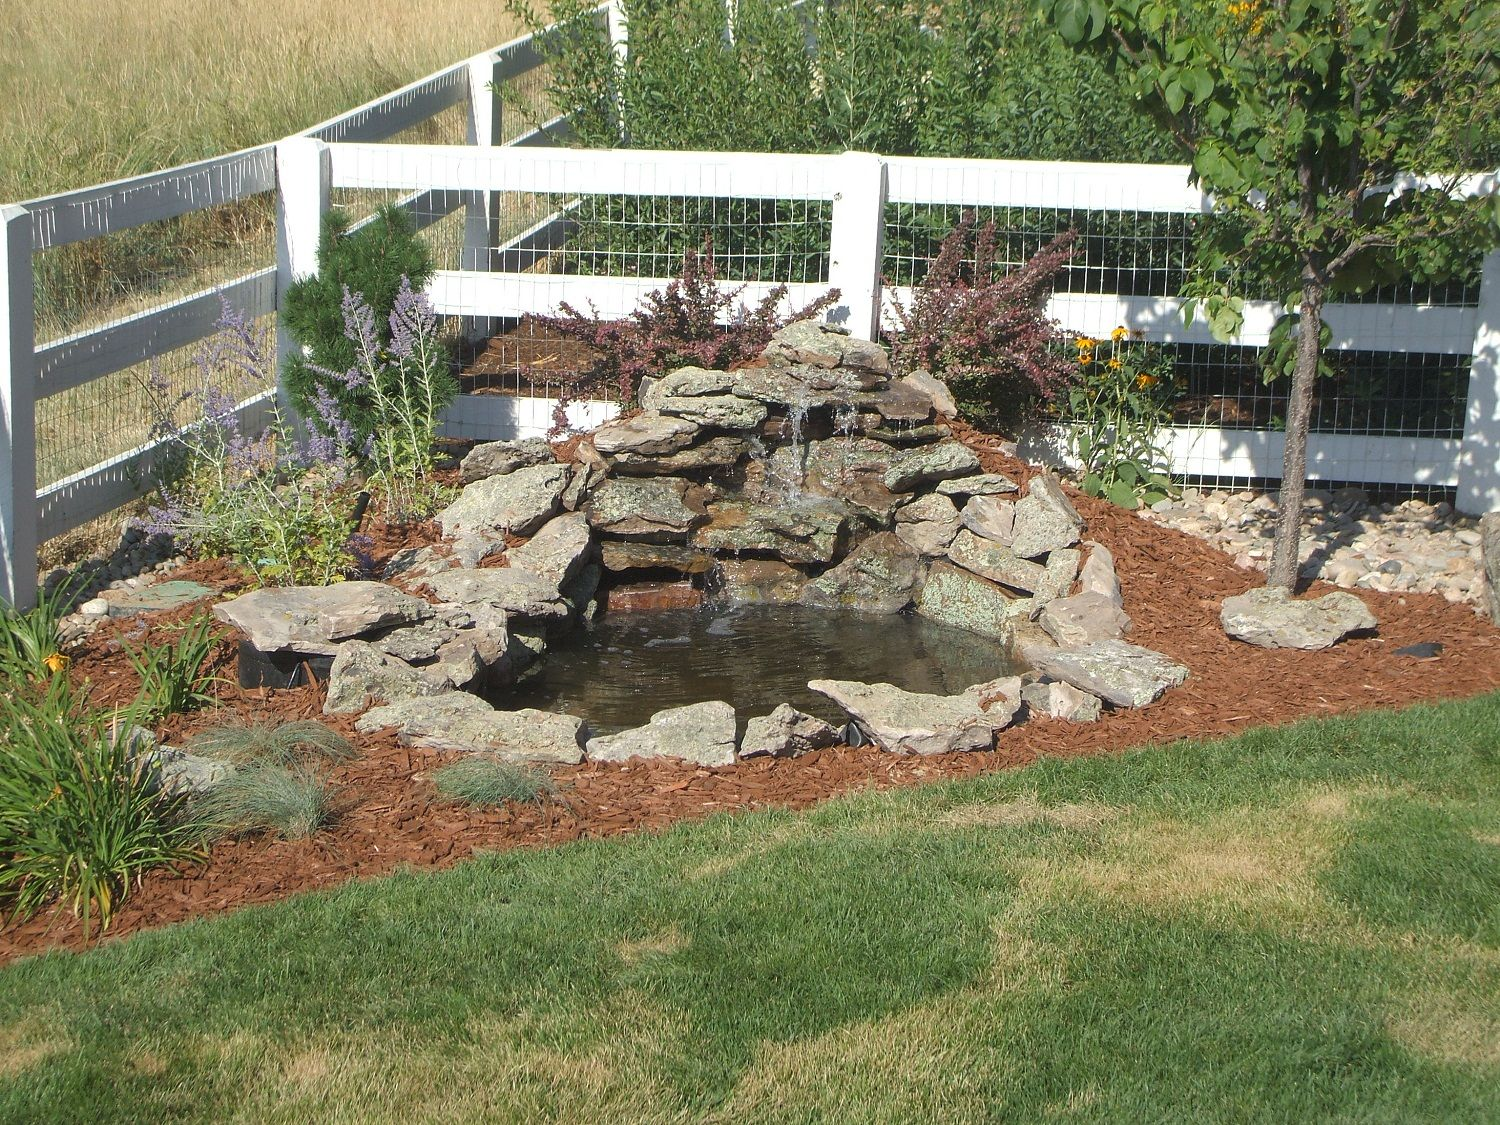 garden and patio  small diy ponds with waterfall and stone border in the corner backyard garden